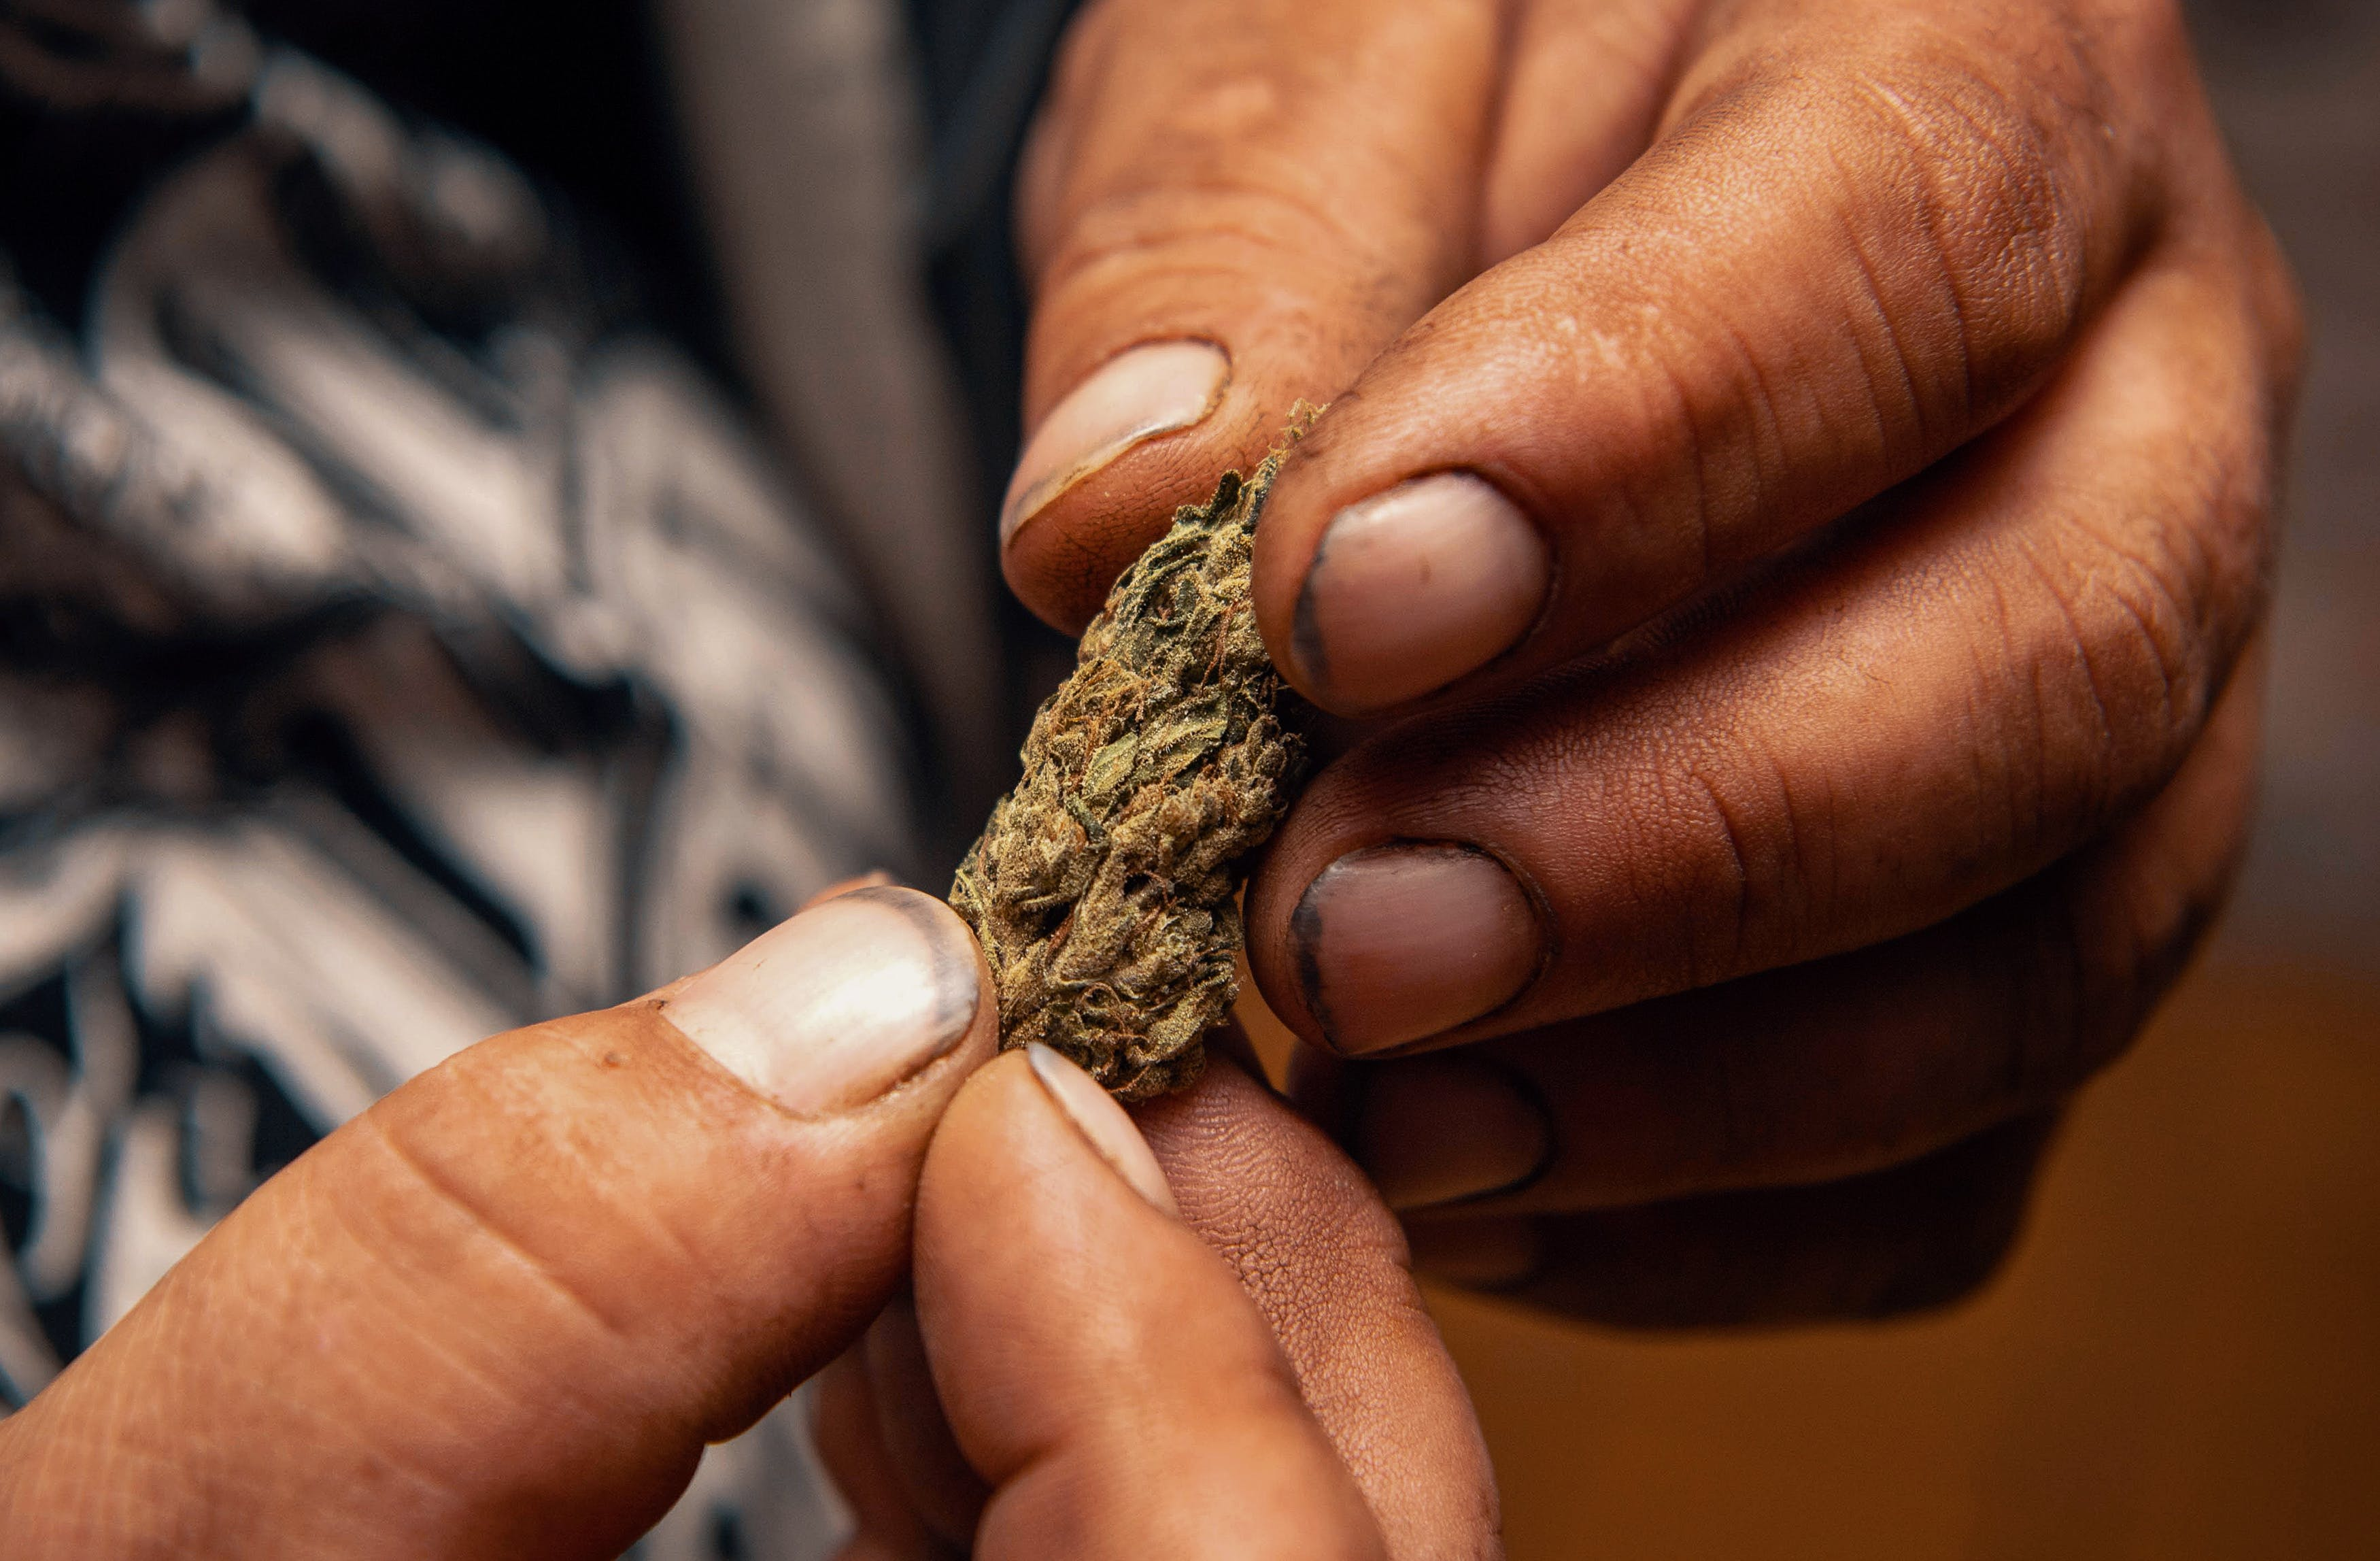 What is Laced Weed What is Laced Weed? The Effects, Risks, and How to Identify It